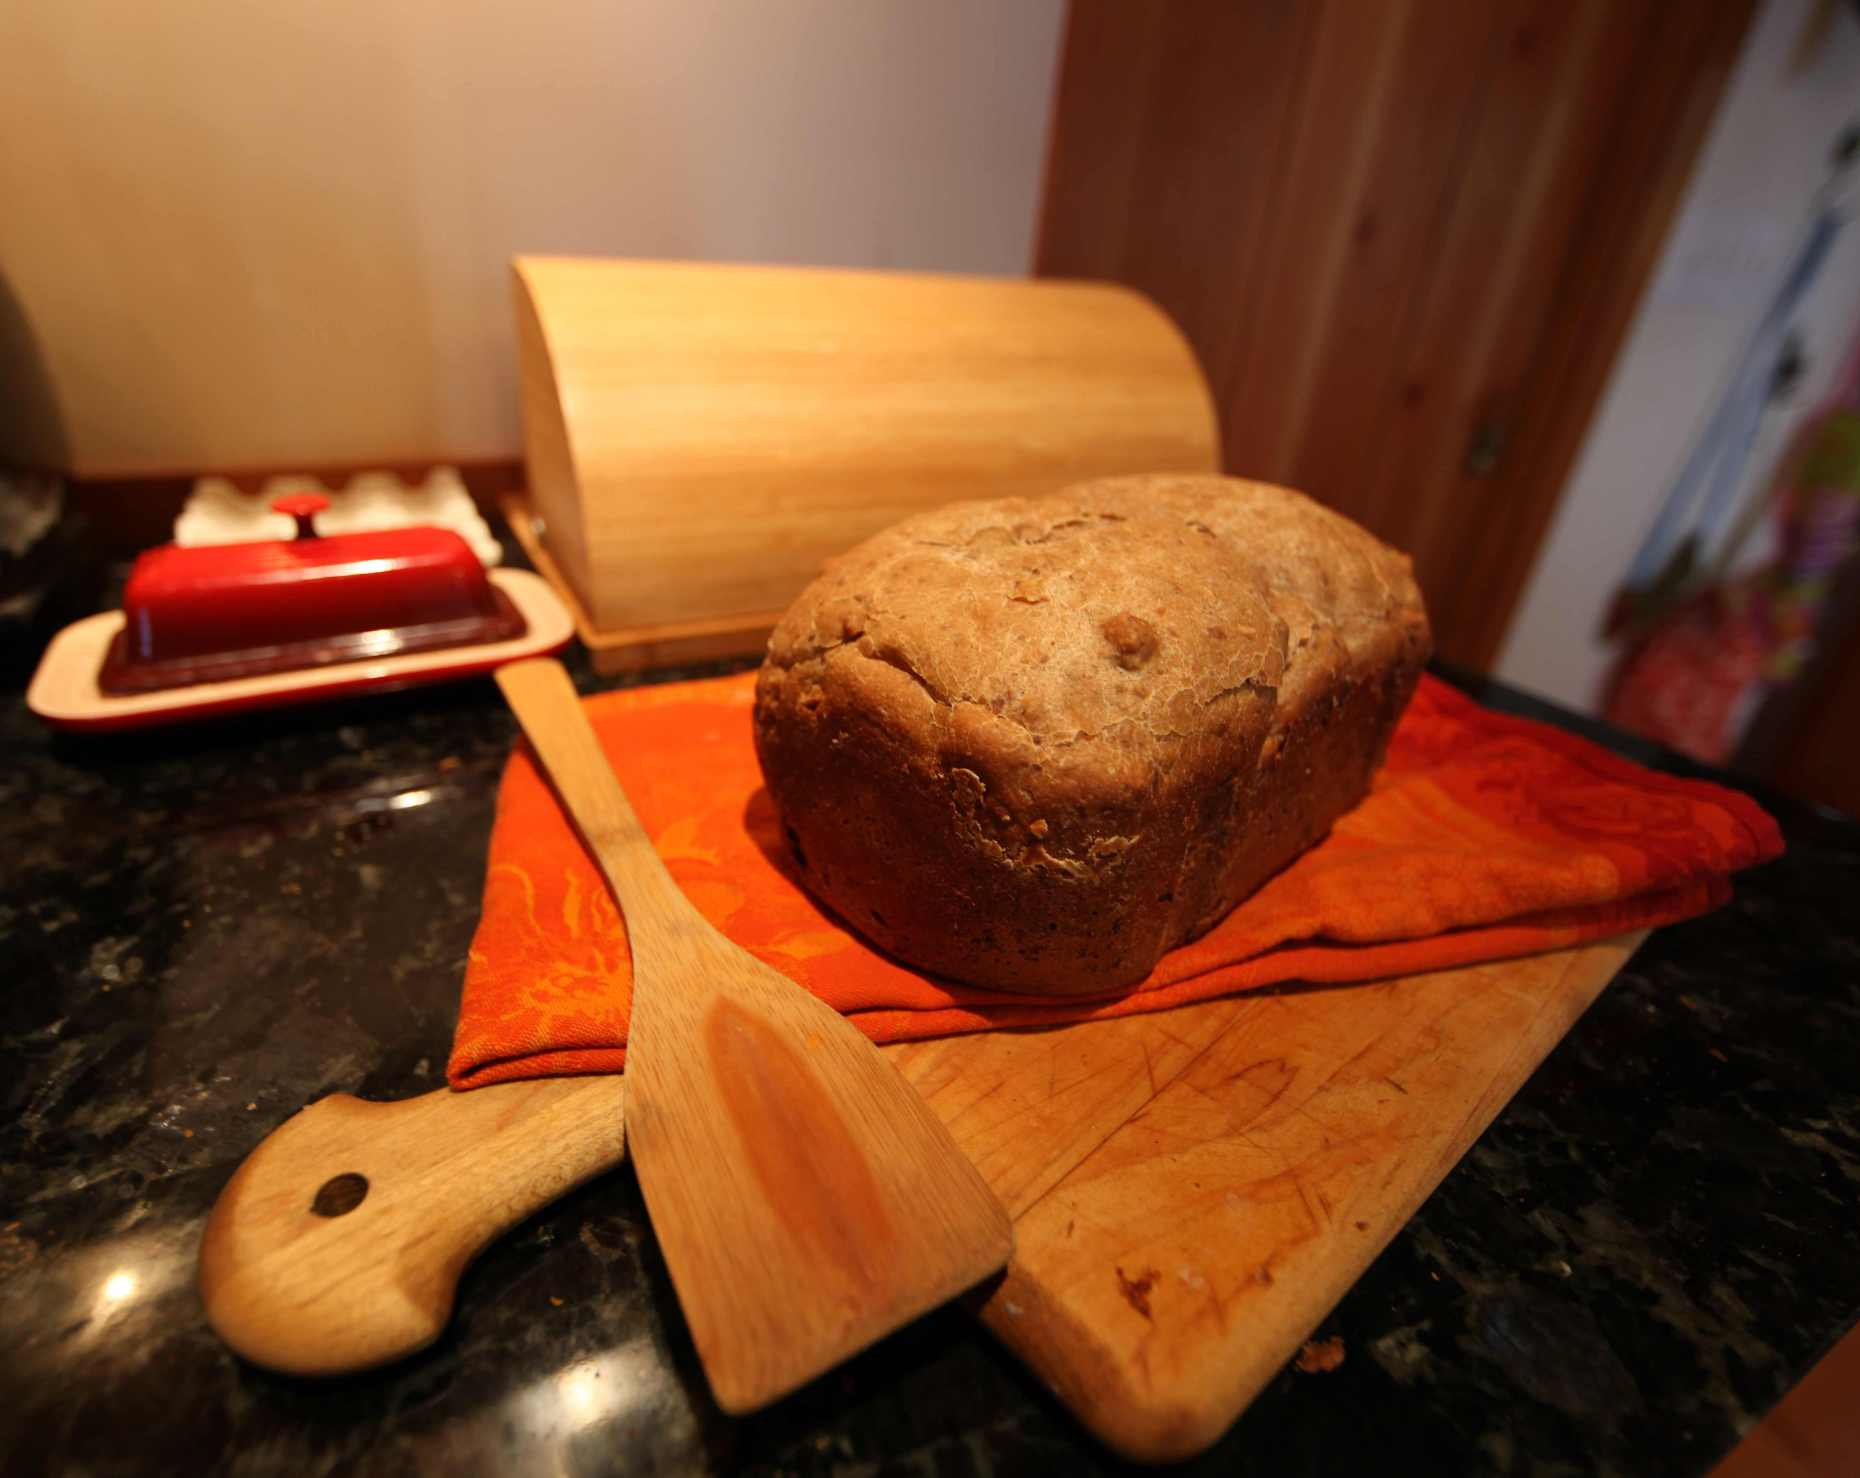 An artisan-style bread from a bread-maker that will please all. Photo © Liesl Clark